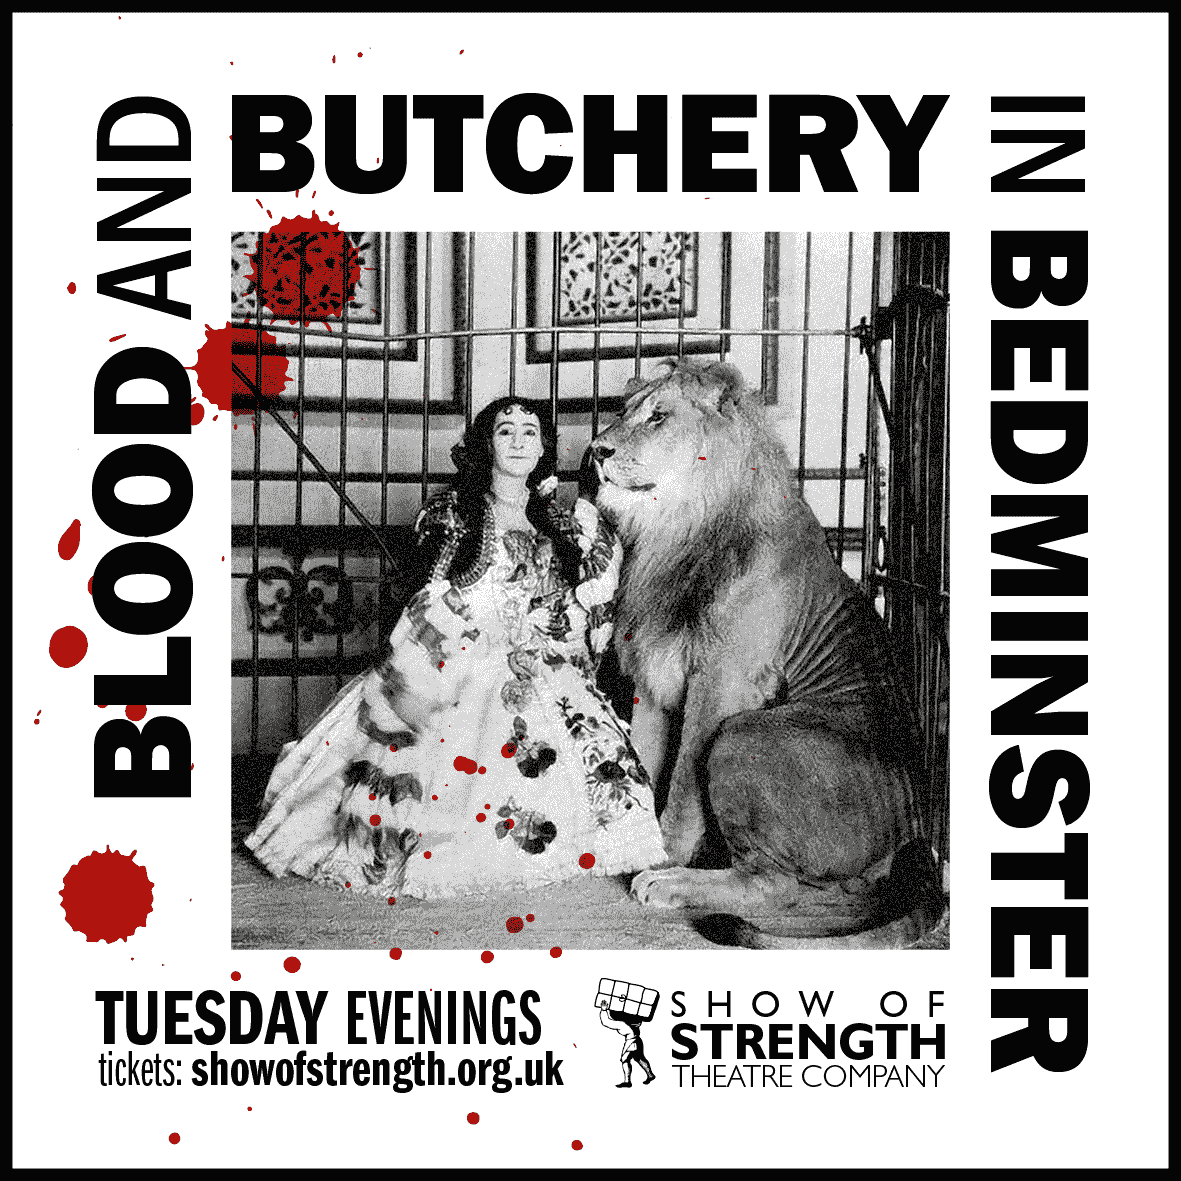 Blood and Butchery in Bedminster, Tuesday evenings